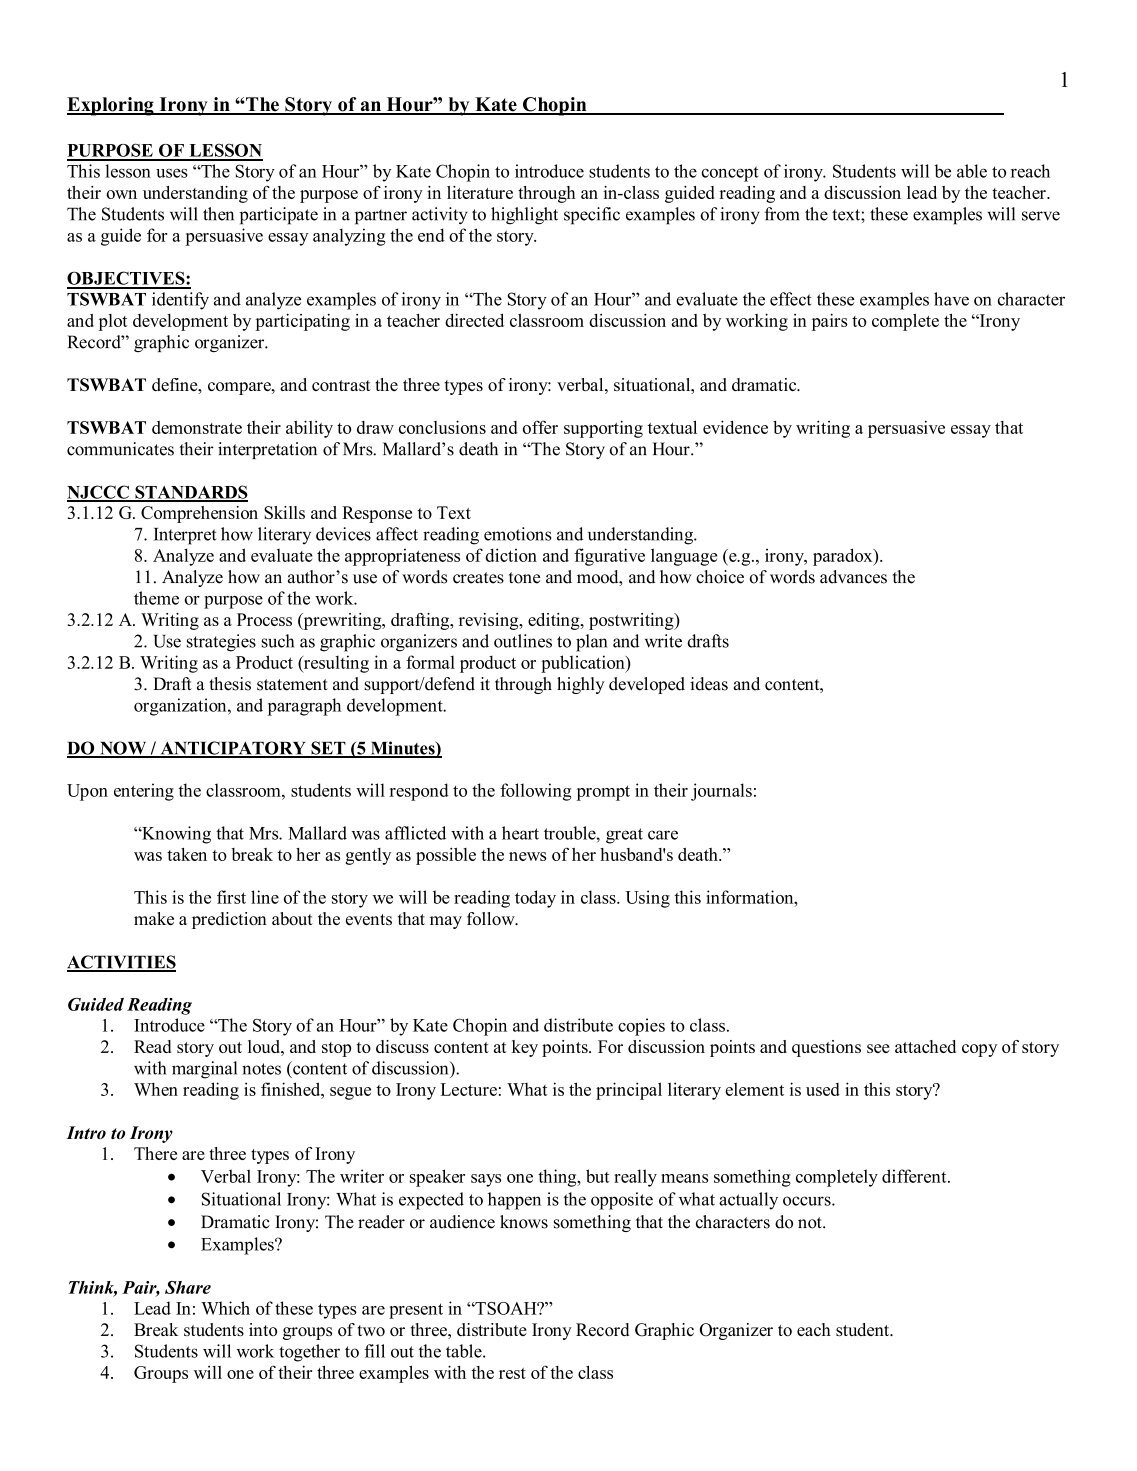 Corruption Essay In English Essay On Irony On Irony Good Comparison Contrast Essay Topics Elephant  Essays Management Writing On Women Compare And Contrast Essay High School And College also Www Oppapers Com Essays Elephant Essay Essay On Irony Best Shooting An Elephant Images An  How To Write A Synthesis Essay